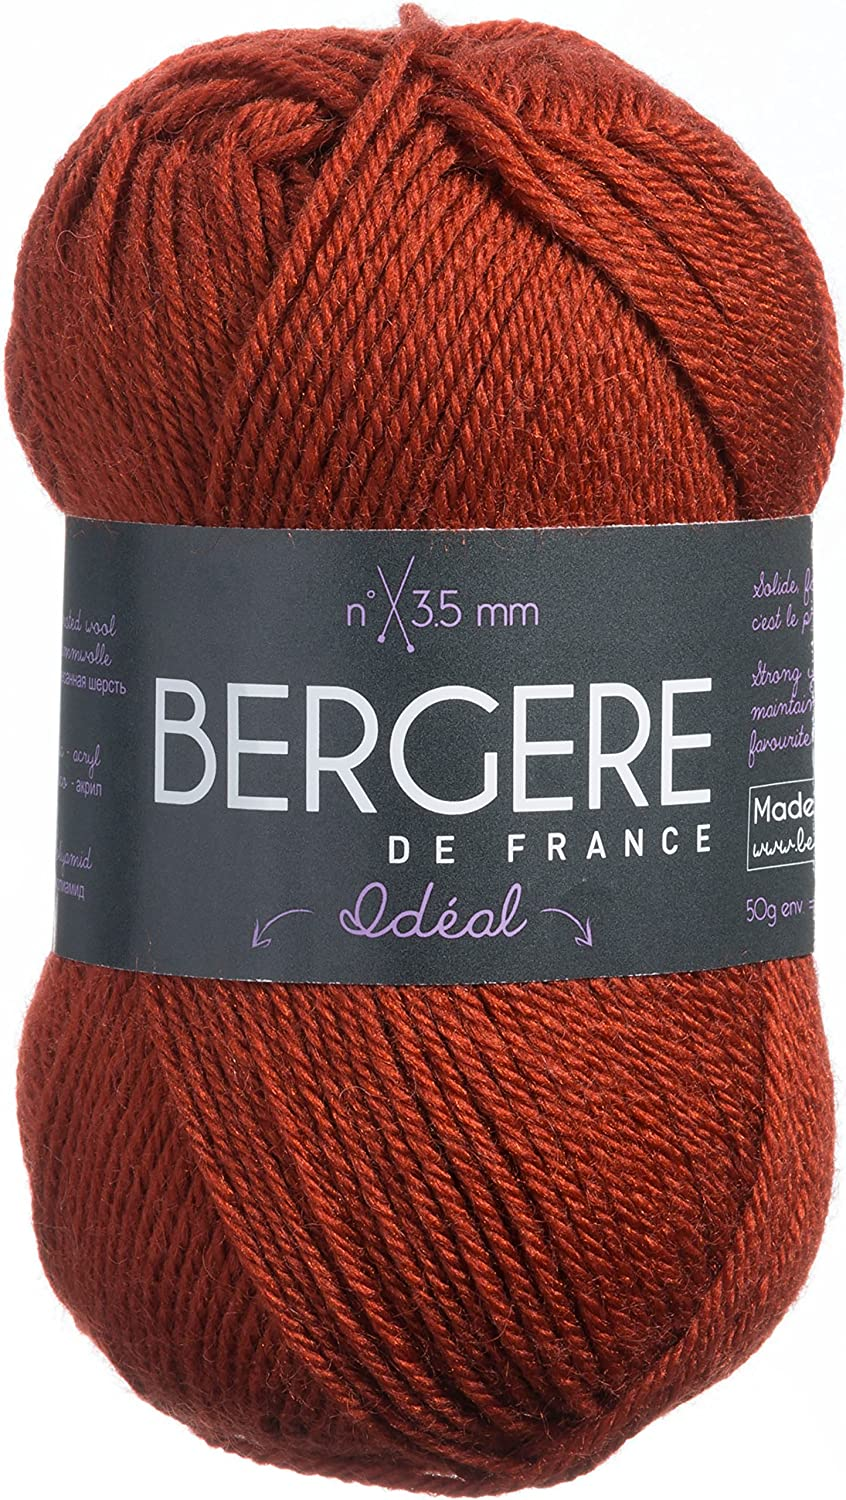 Yarn Bergere Ideal Sequoia